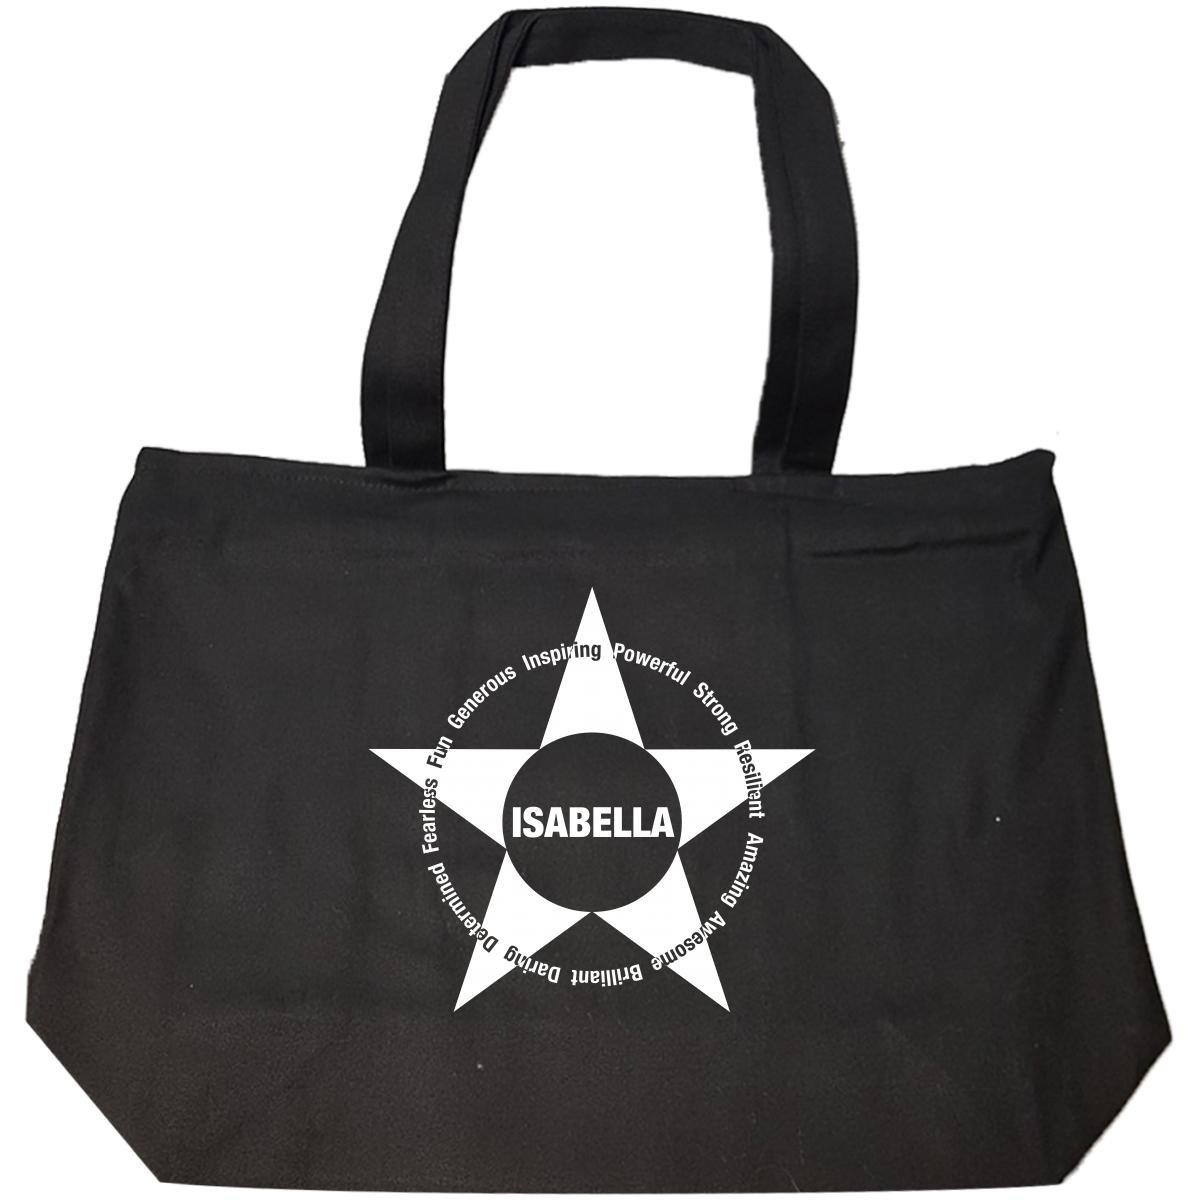 Amazing Inspirational Gift For Isabella Name Gold Foil - Tote Bag With Zip